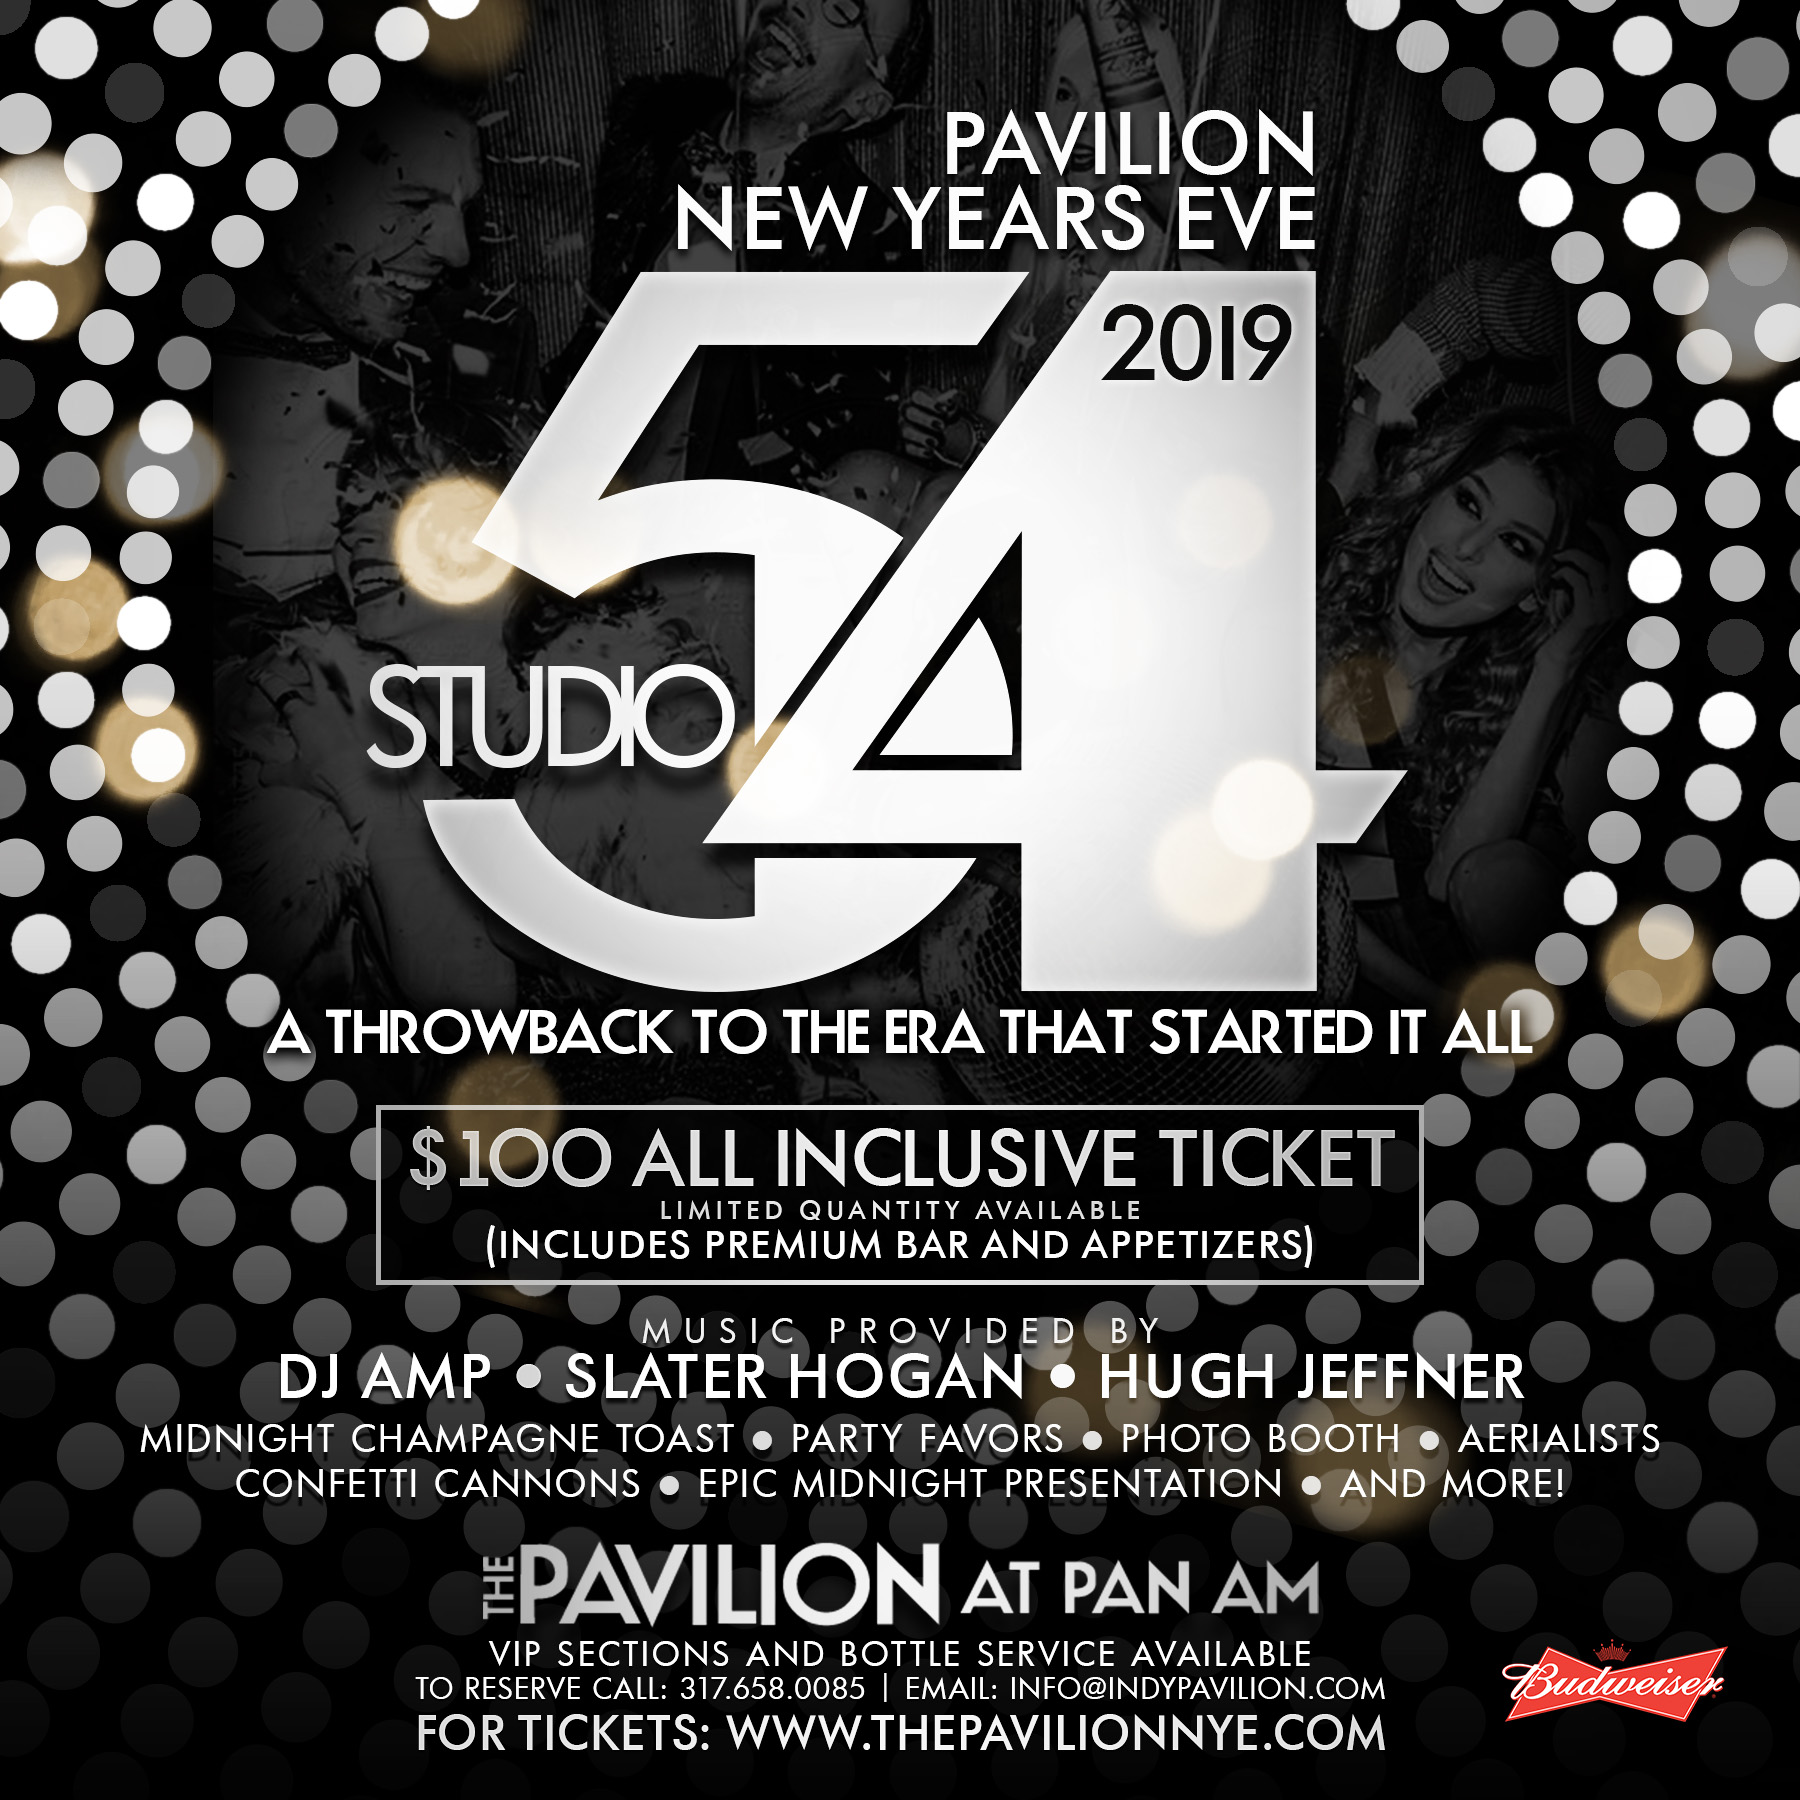 Pan Am Studio 54